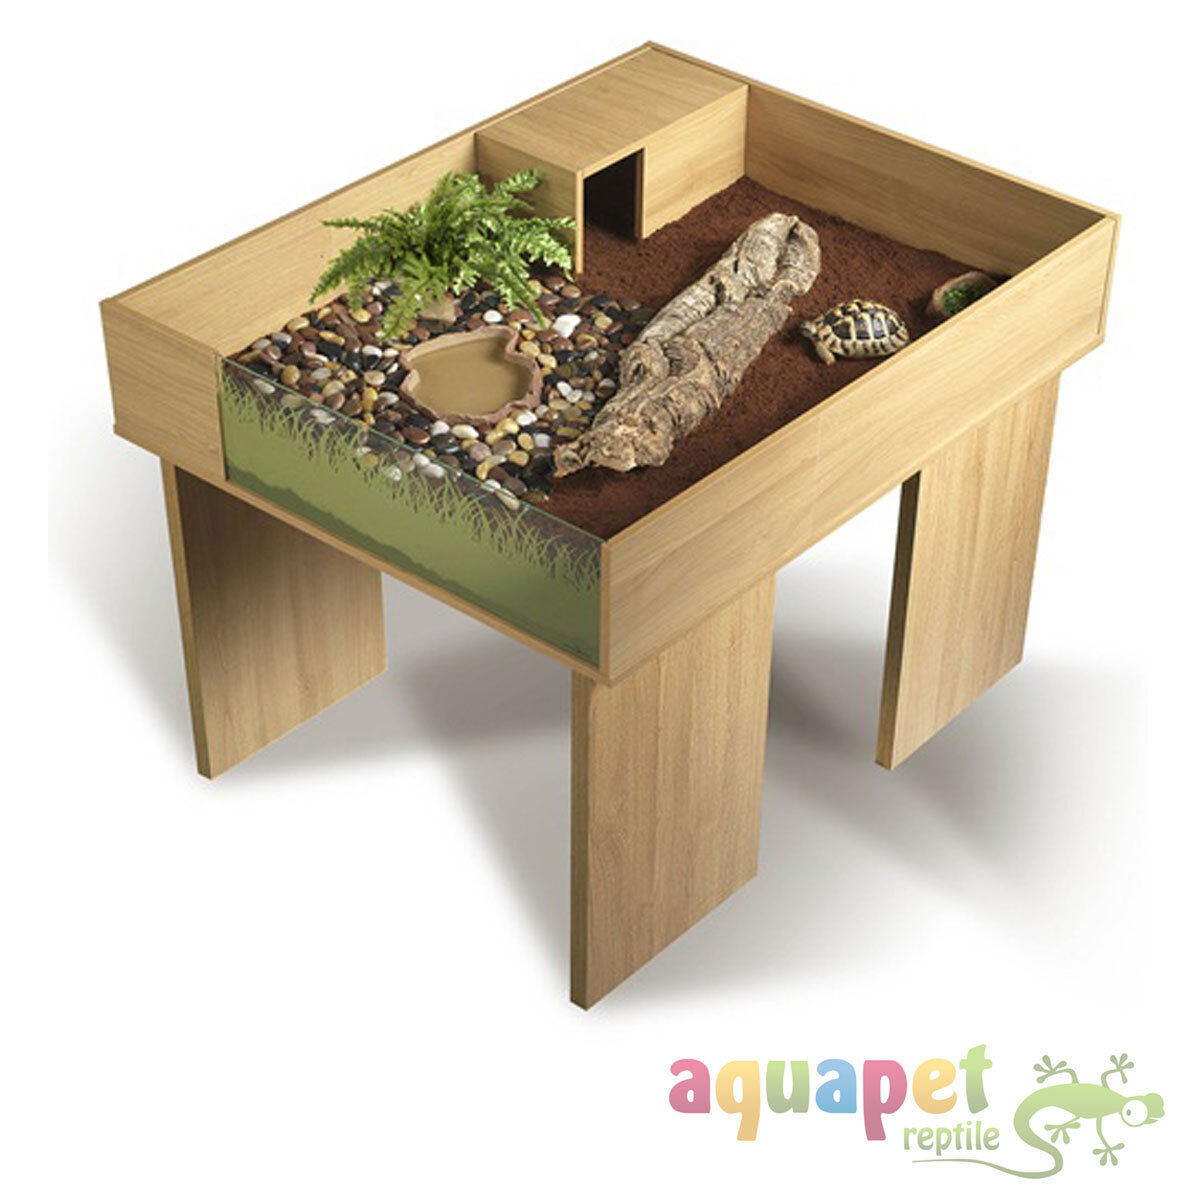 Tortoise table species specific products vivexotic vivariums - Vivexotic Tortoise Table Extension Stand Setup Kit Flat Pack